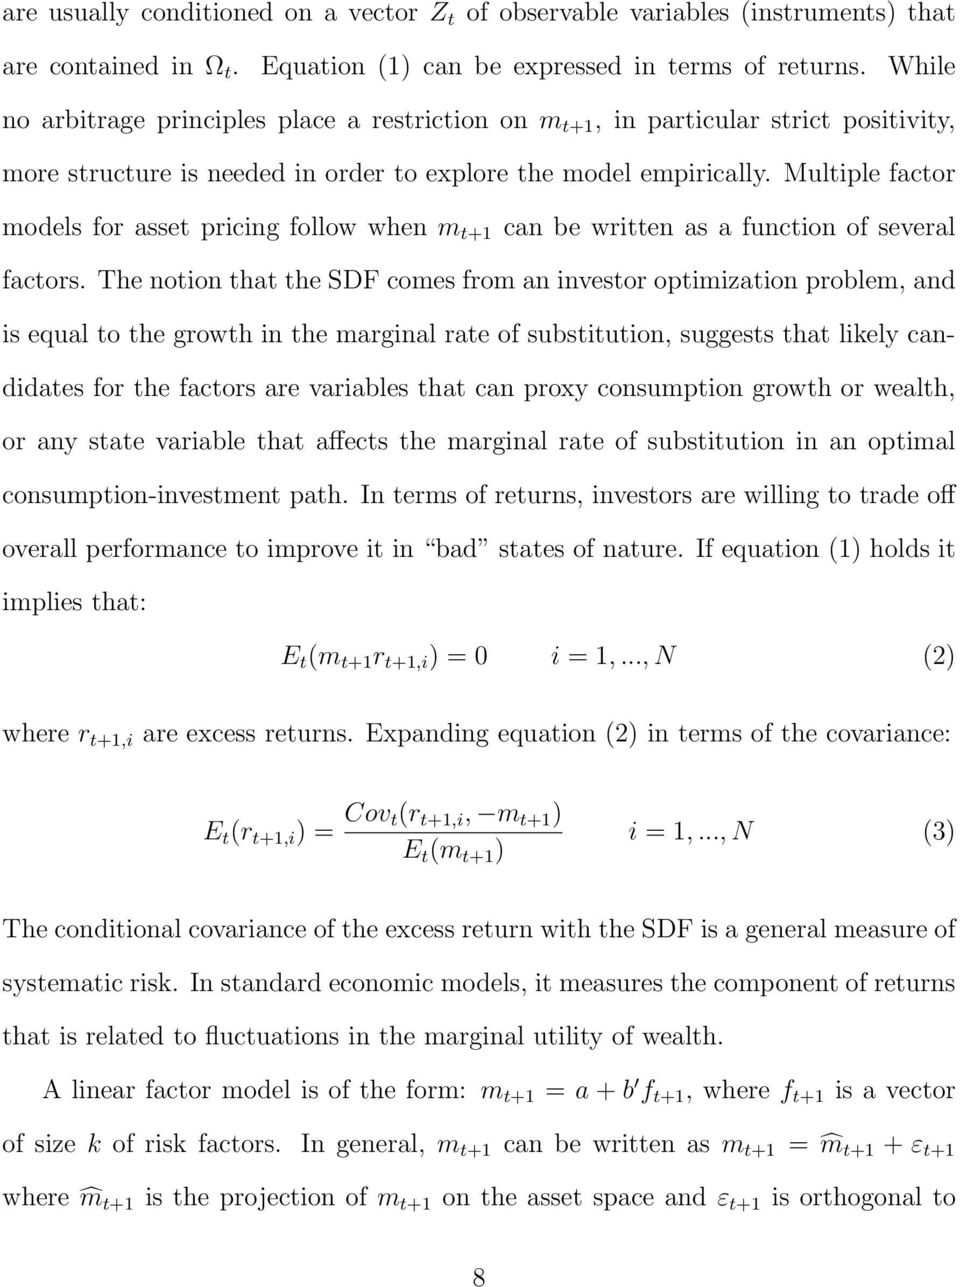 Multiple factor models for asset pricing follow when m t+1 can be written as a function of several factors.